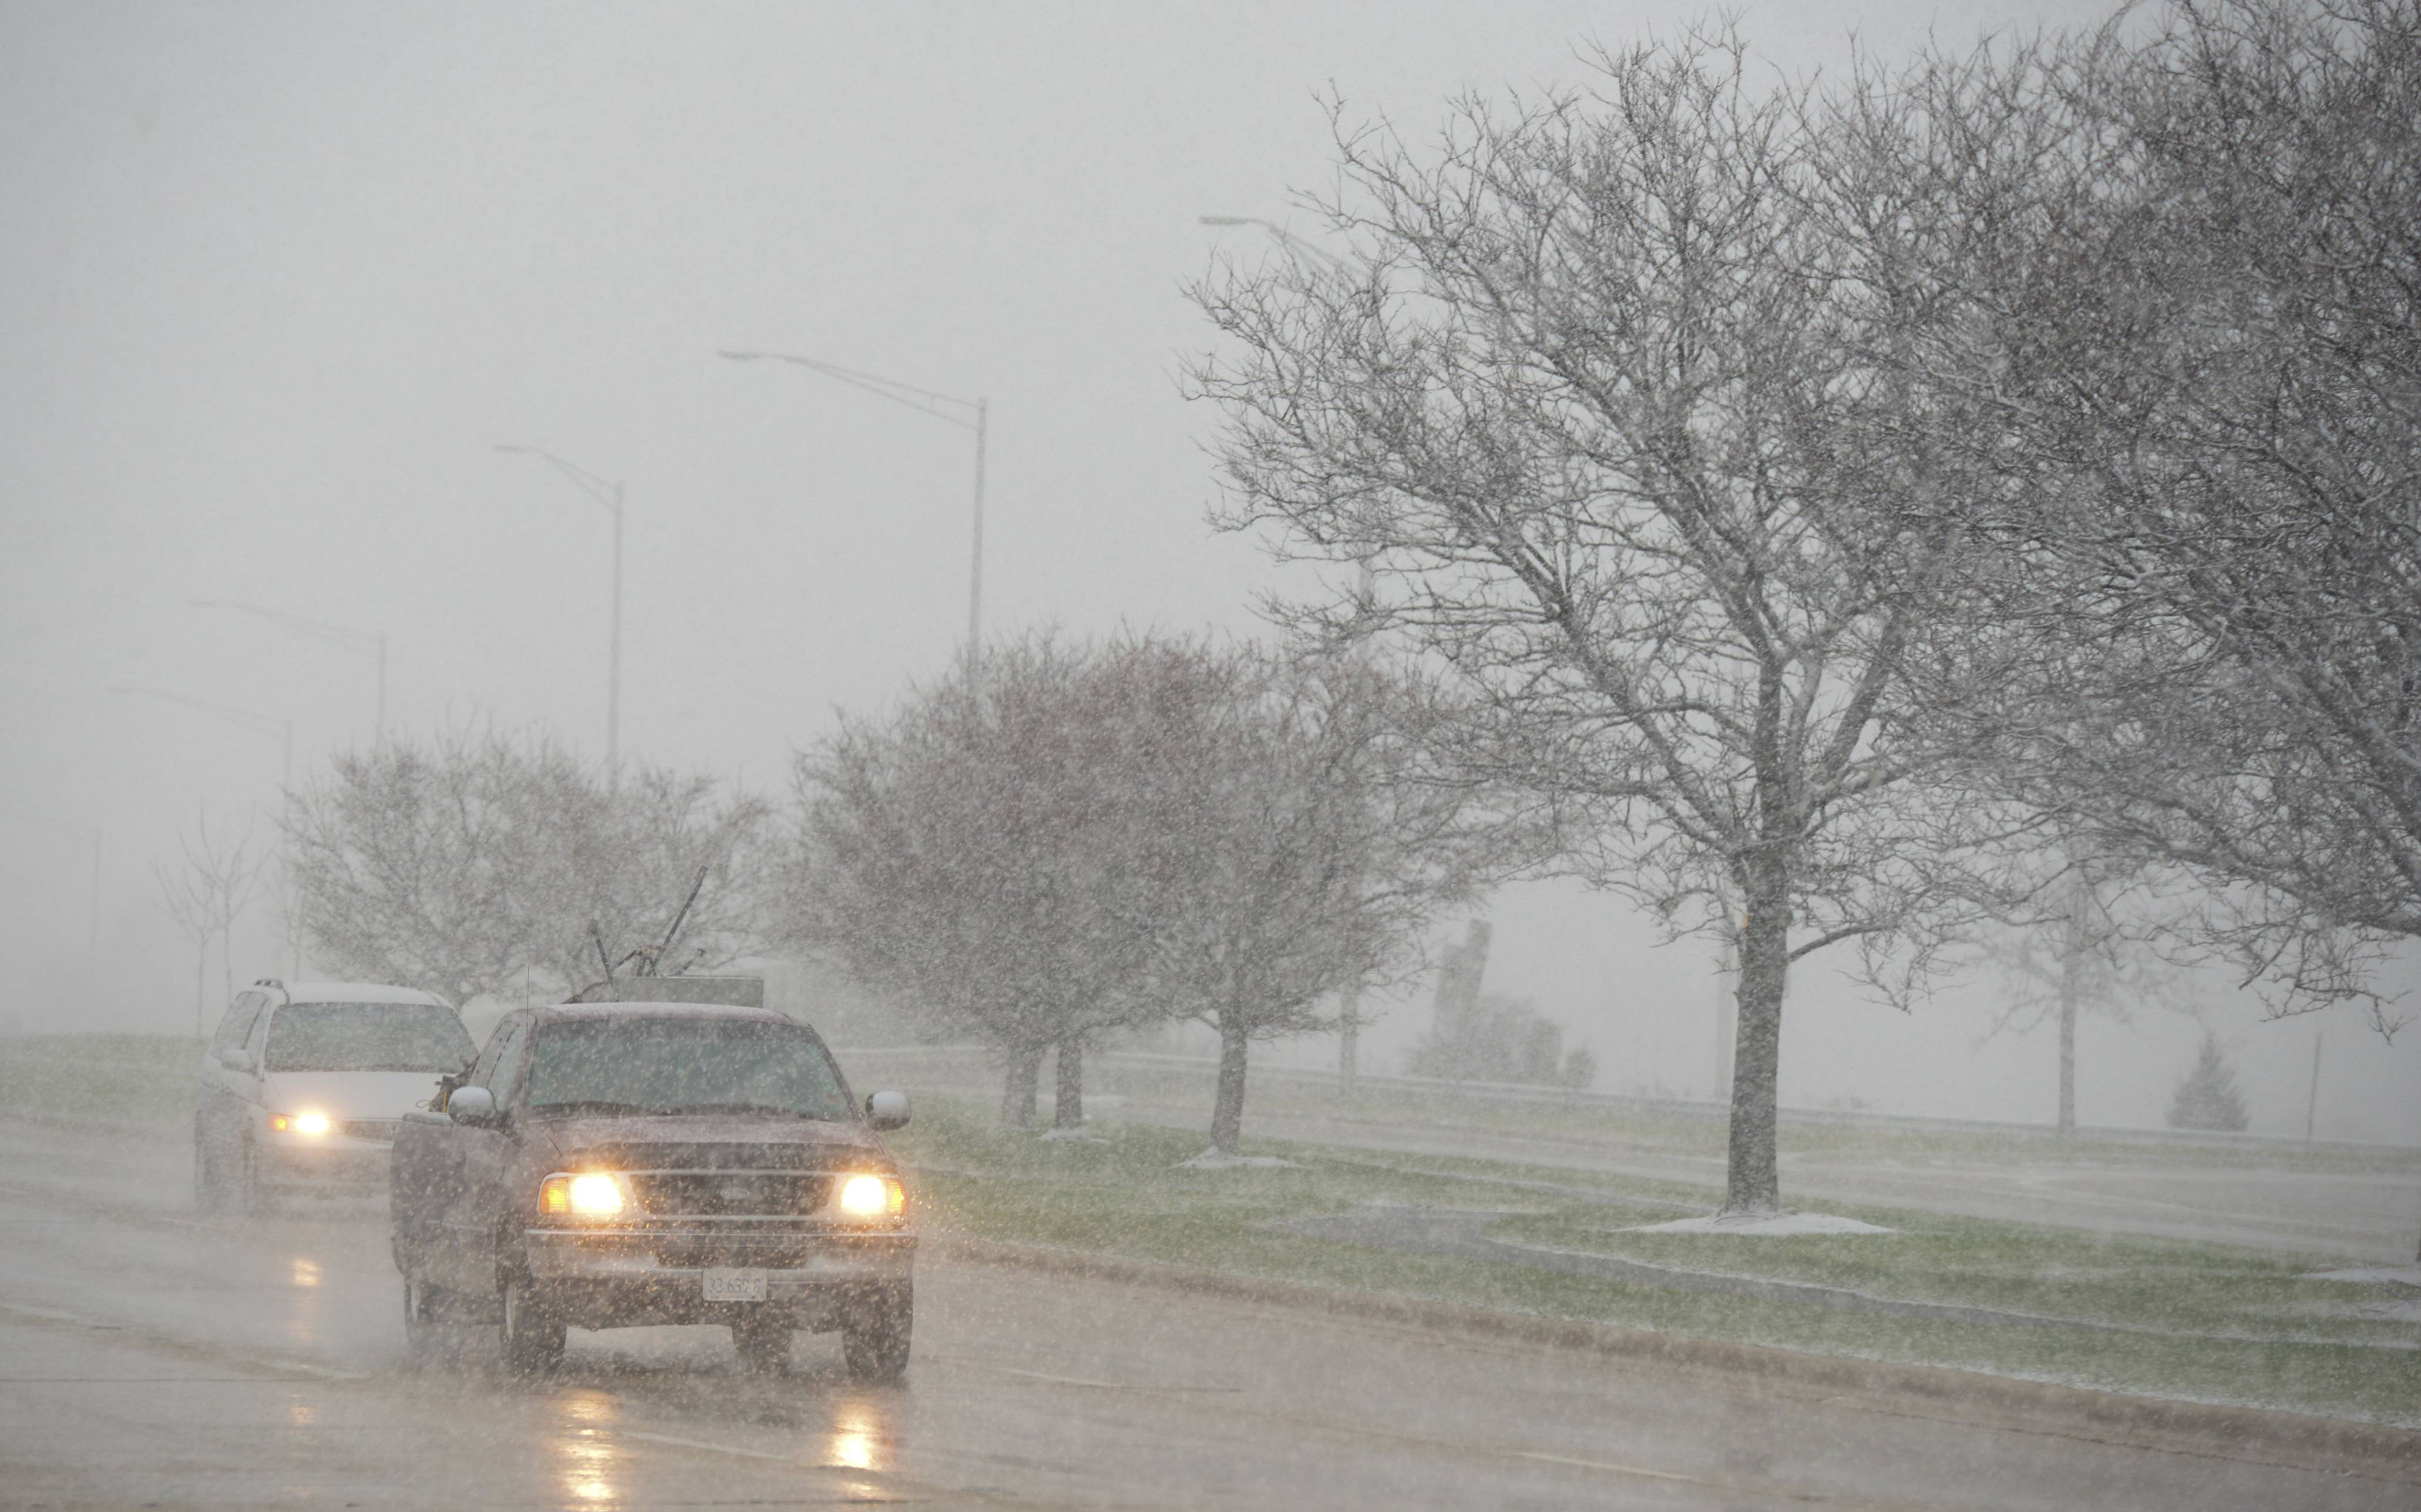 The suburbs could see 6-10 inches of snow this weekend.